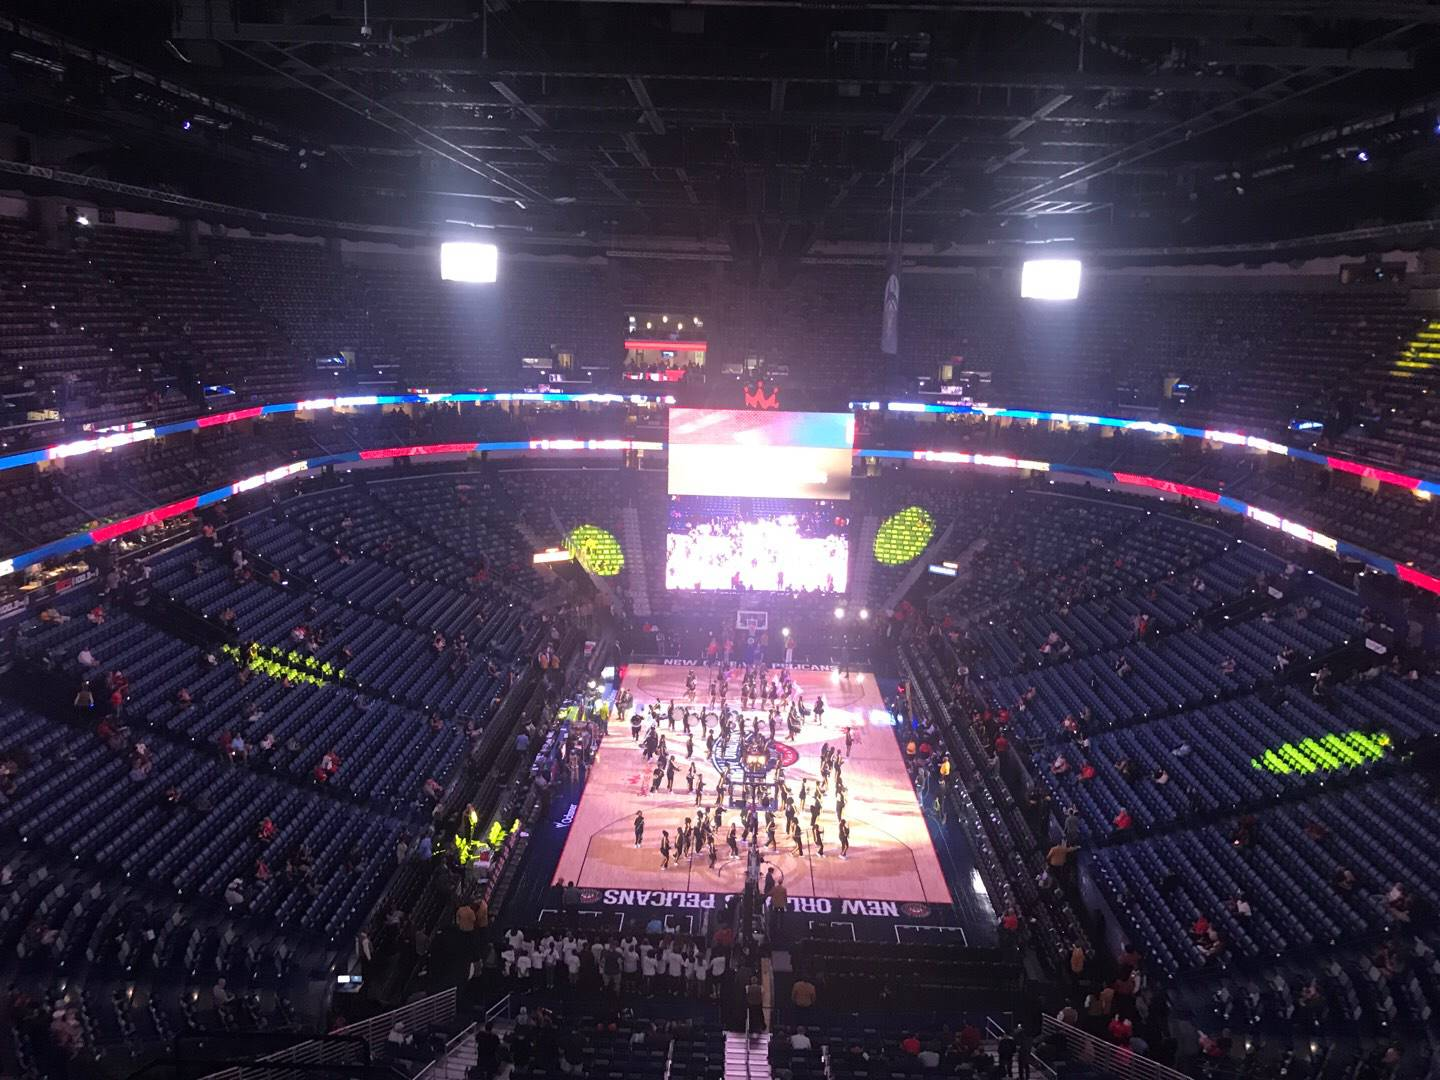 Smoothie King Center Section 308 Row 11 Seat 8